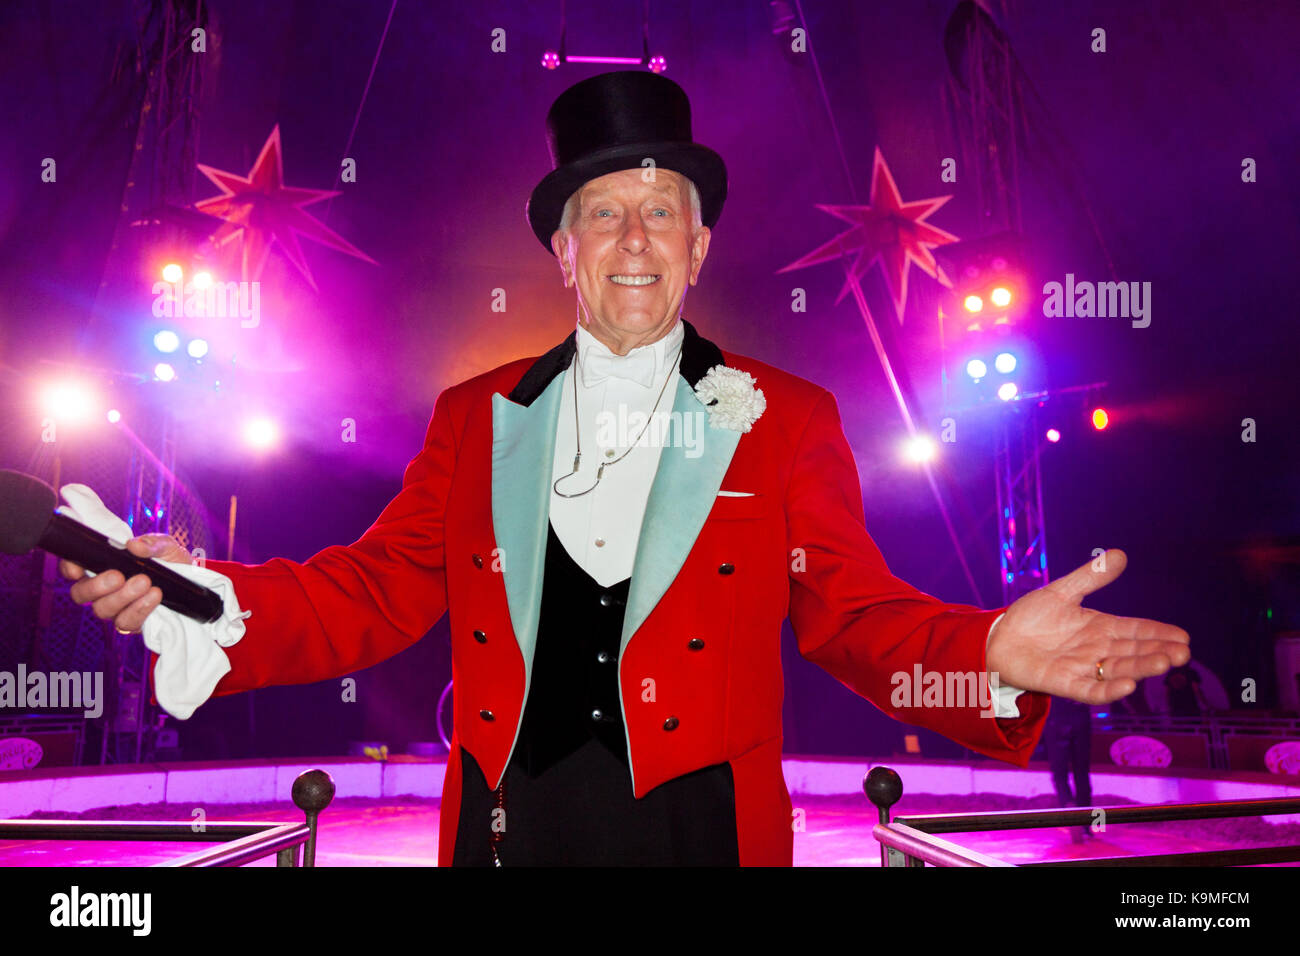 Norman Barrett, MBE, shown at Zippos Cirus. He is a veteran British circus ringmaster. (90) - Stock Image